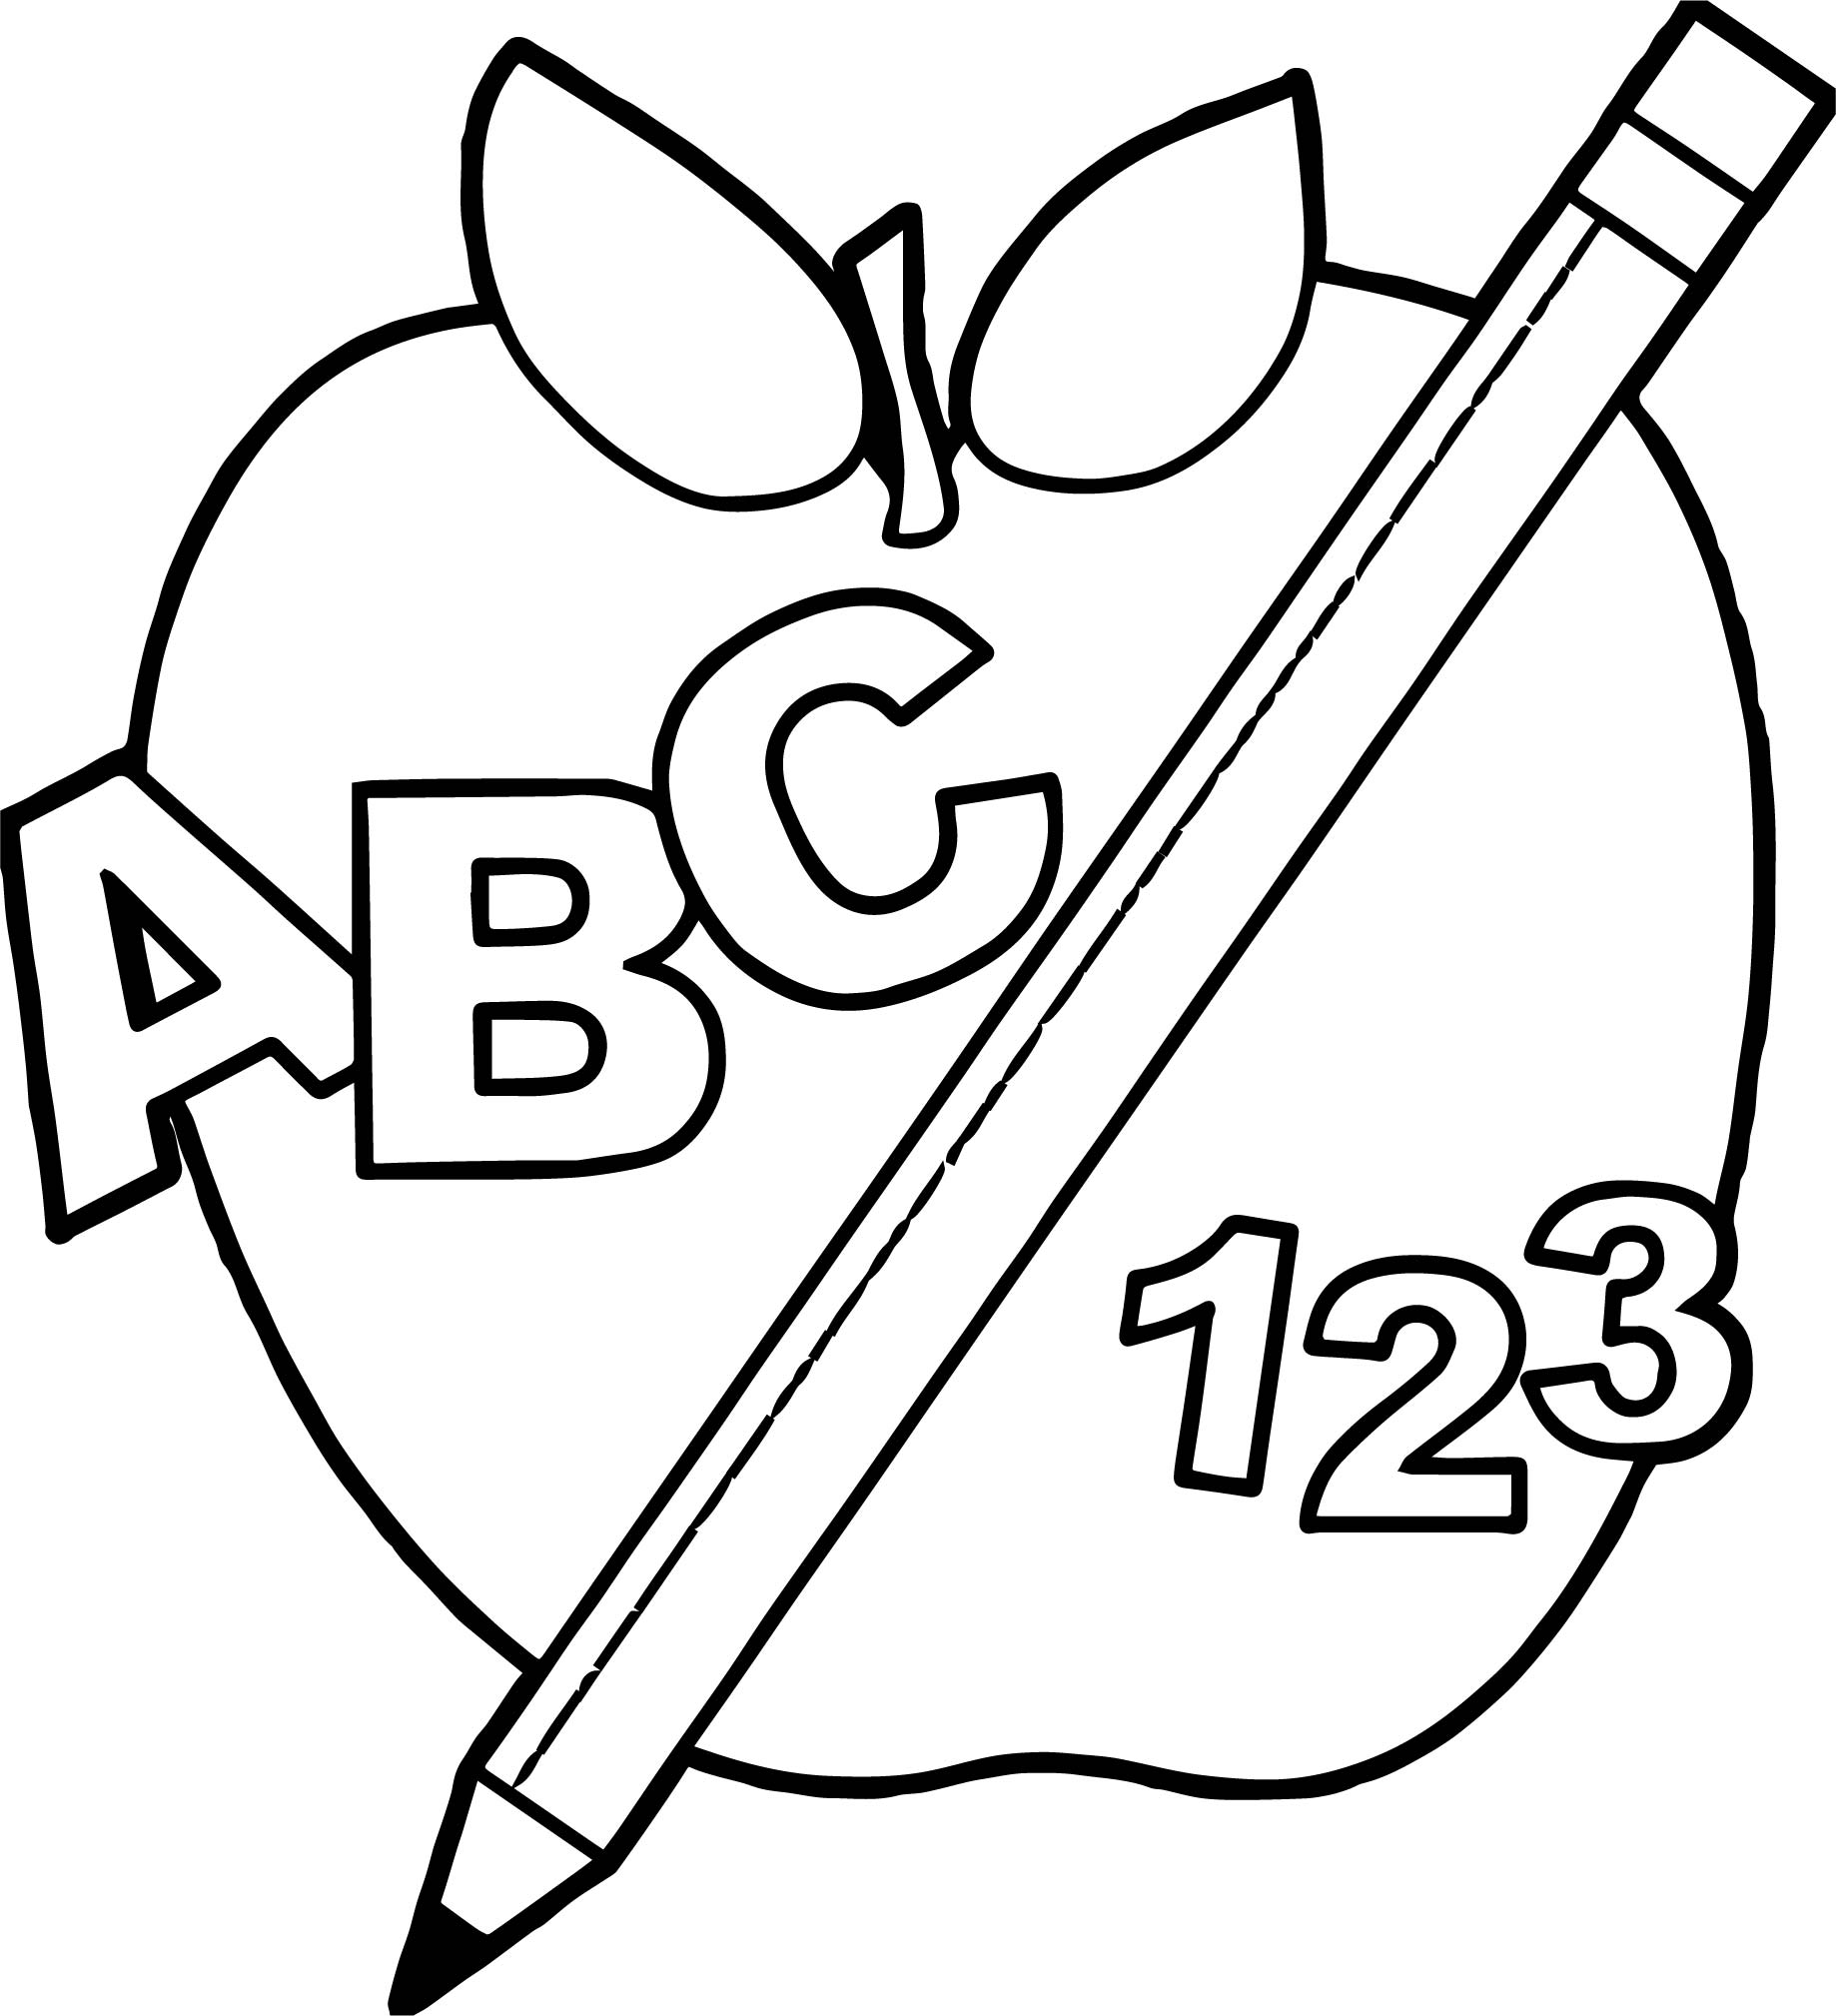 back to abc apple and pencil abc teach coloring page